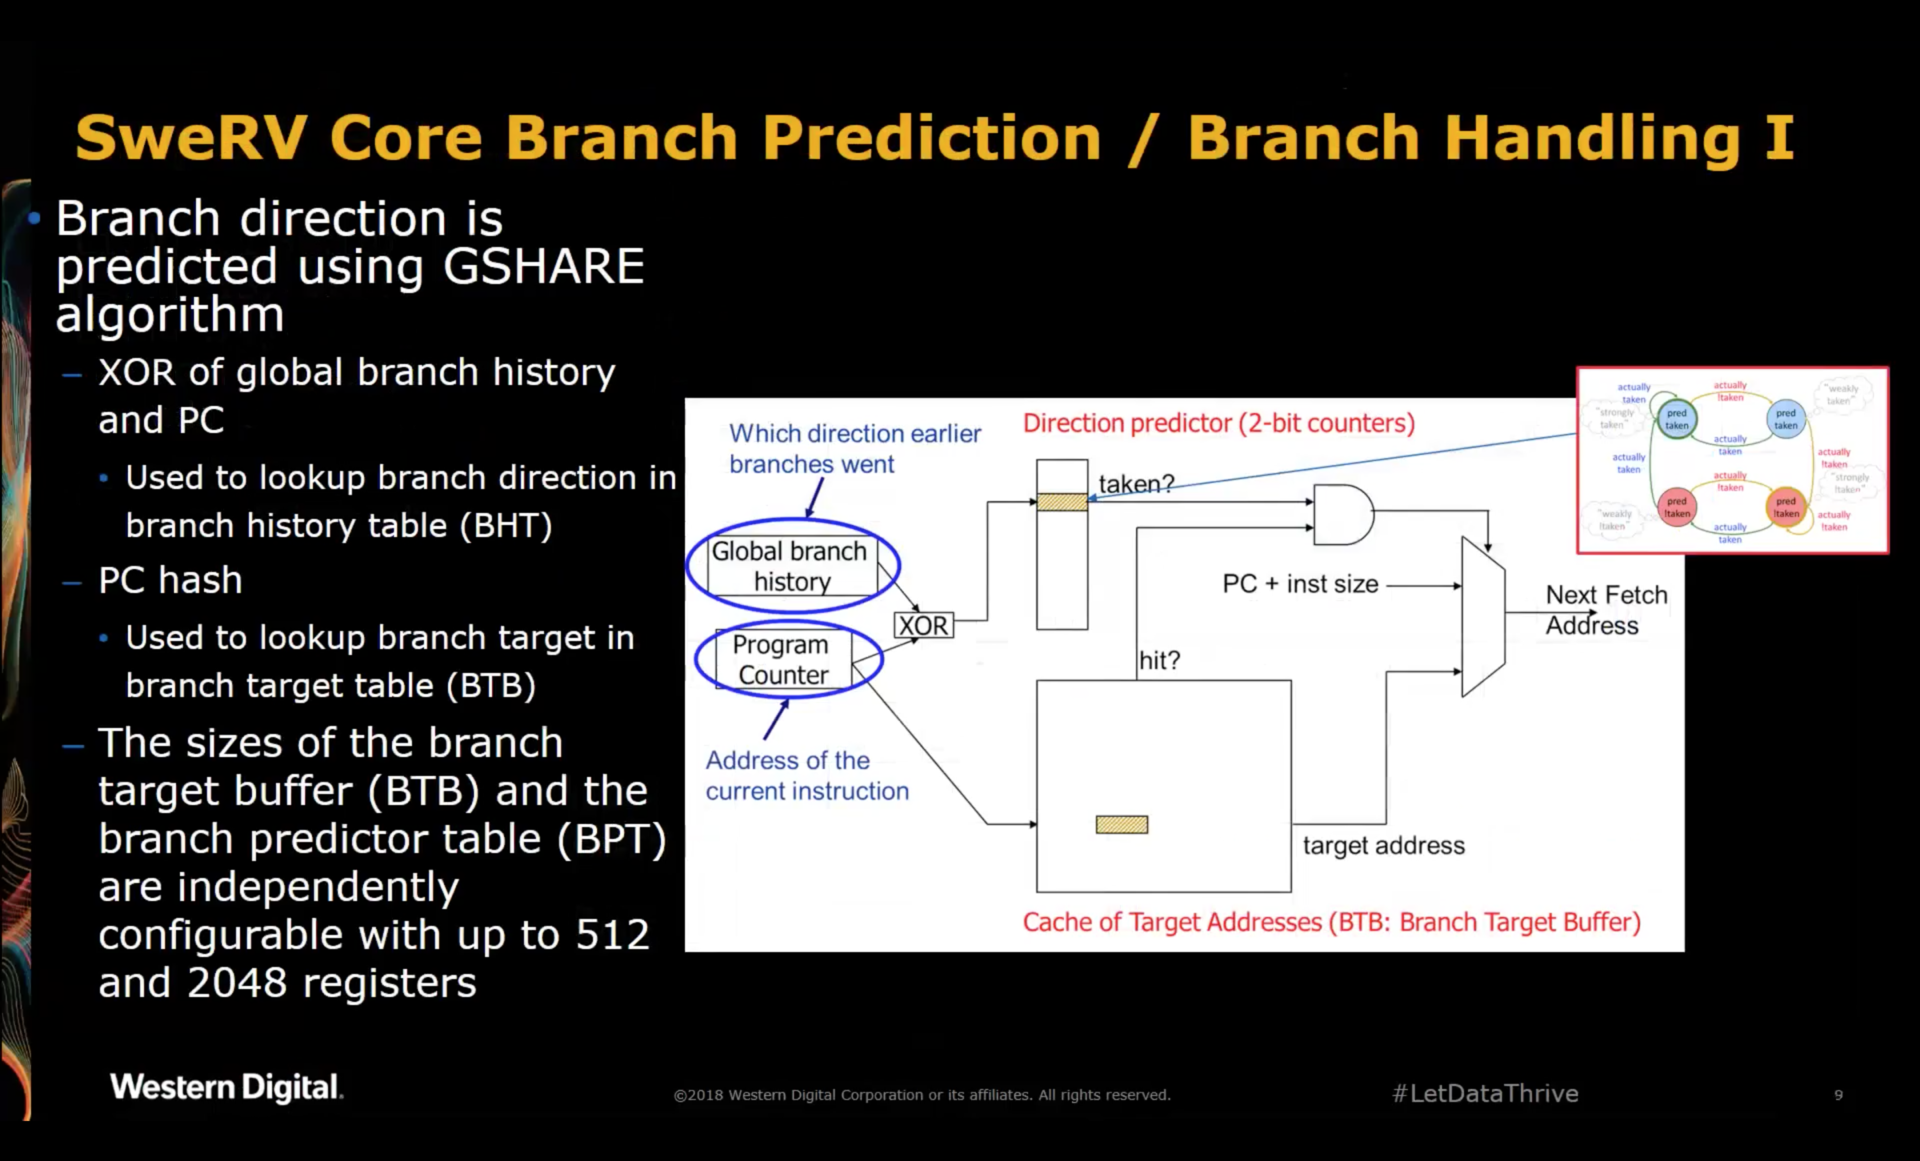 SweRV Core Branch Prediction and Handling 1